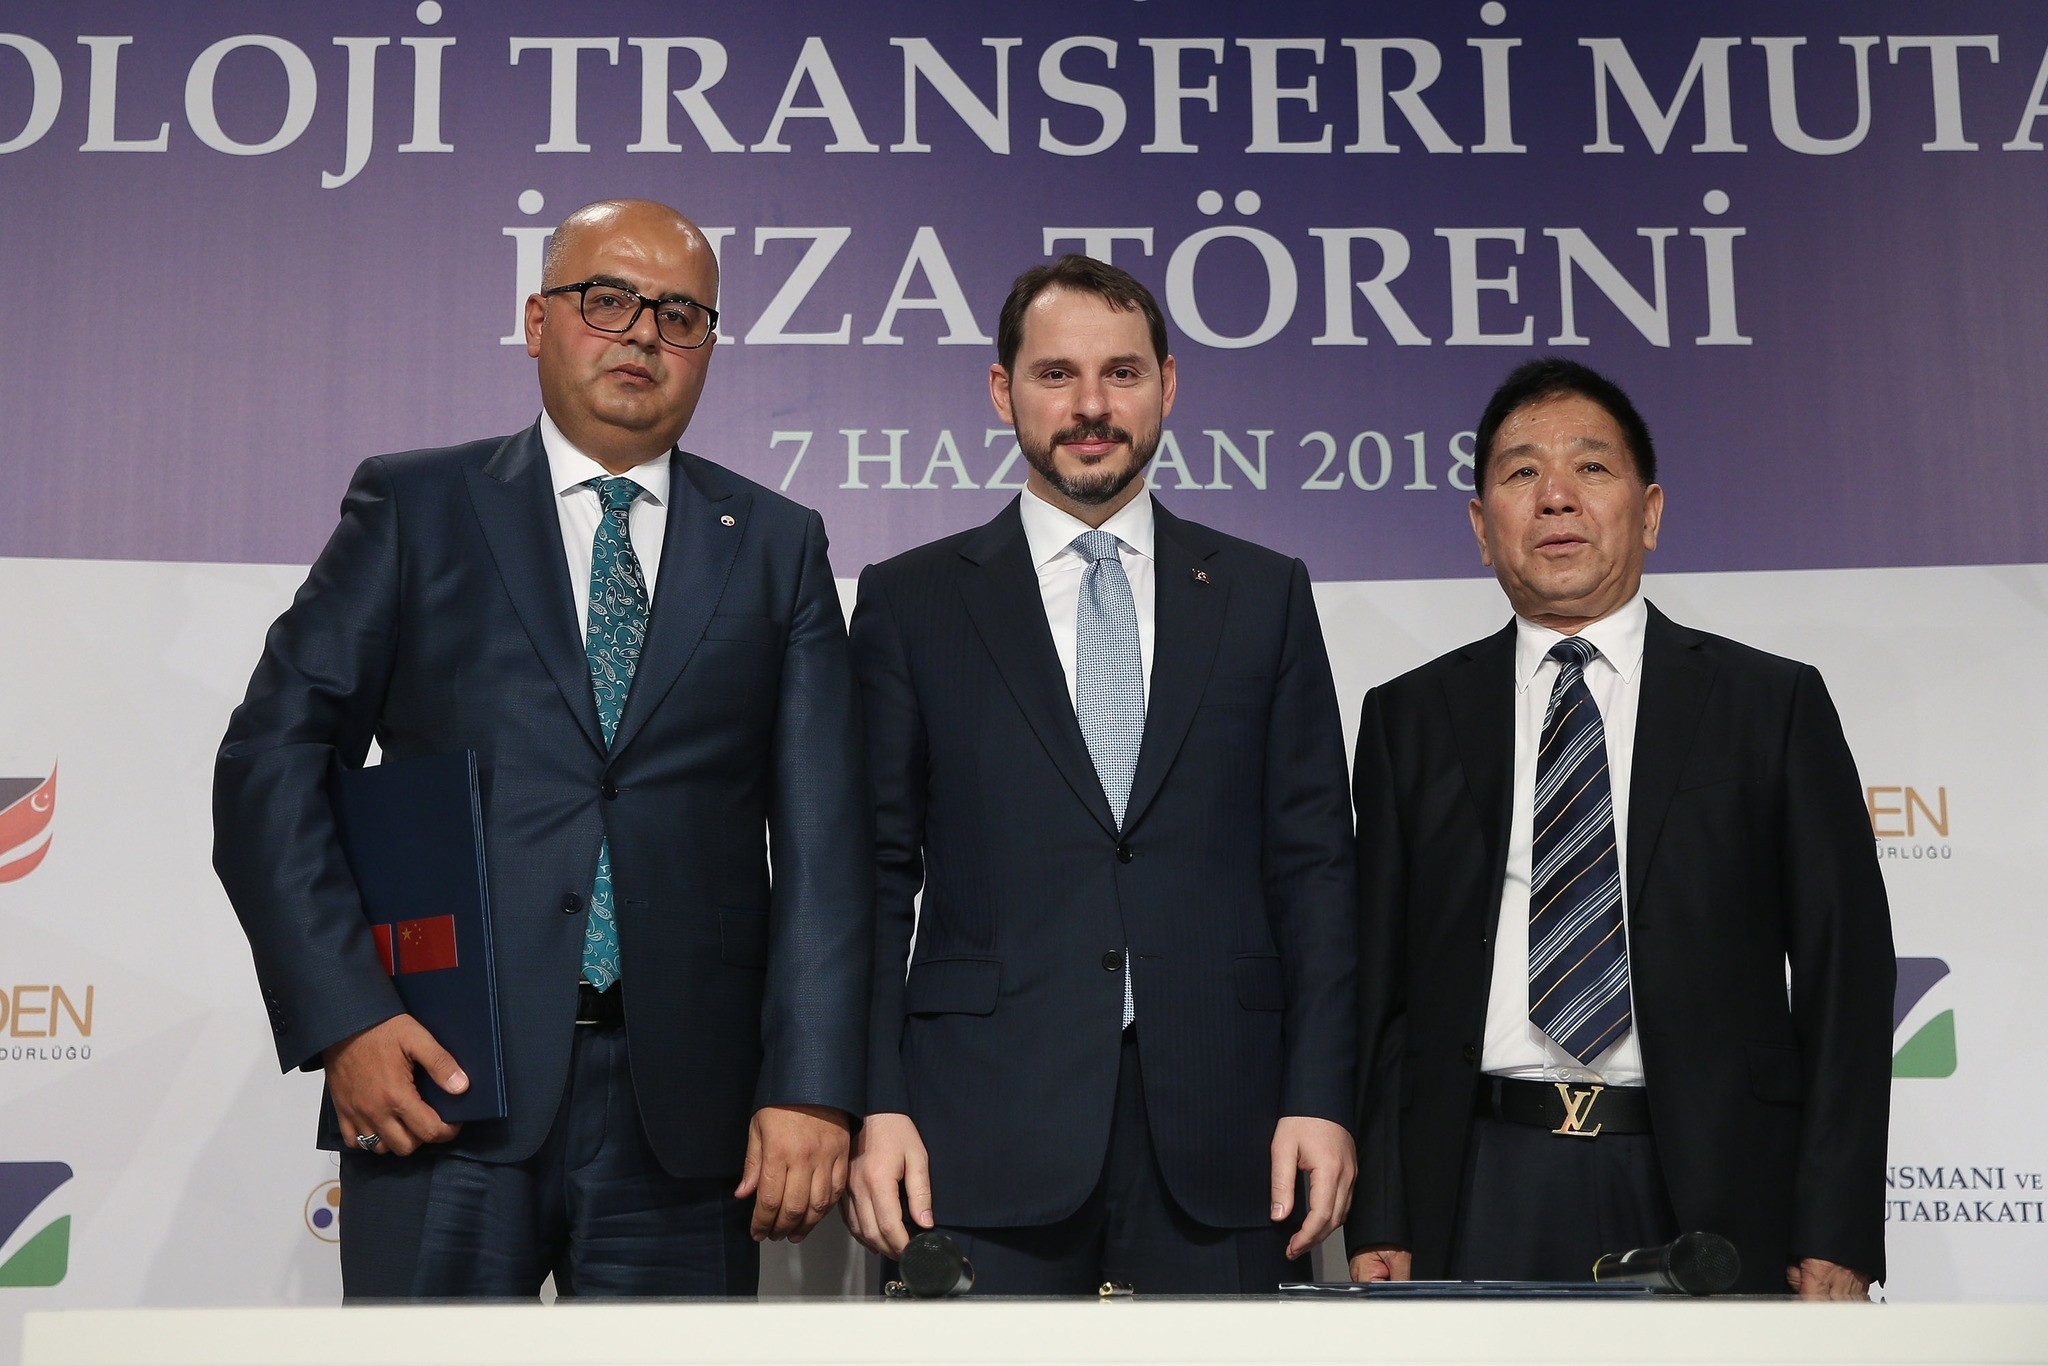 Energy Minister Berat Albayrak (C) attended the launch of the new boron strategy and a MoU signing ceremony with Chinese Dalian Jinma top executive Wang Yahne (R) and Eti Maden General Manager and Chairman Serkan Keleu015fer (L).